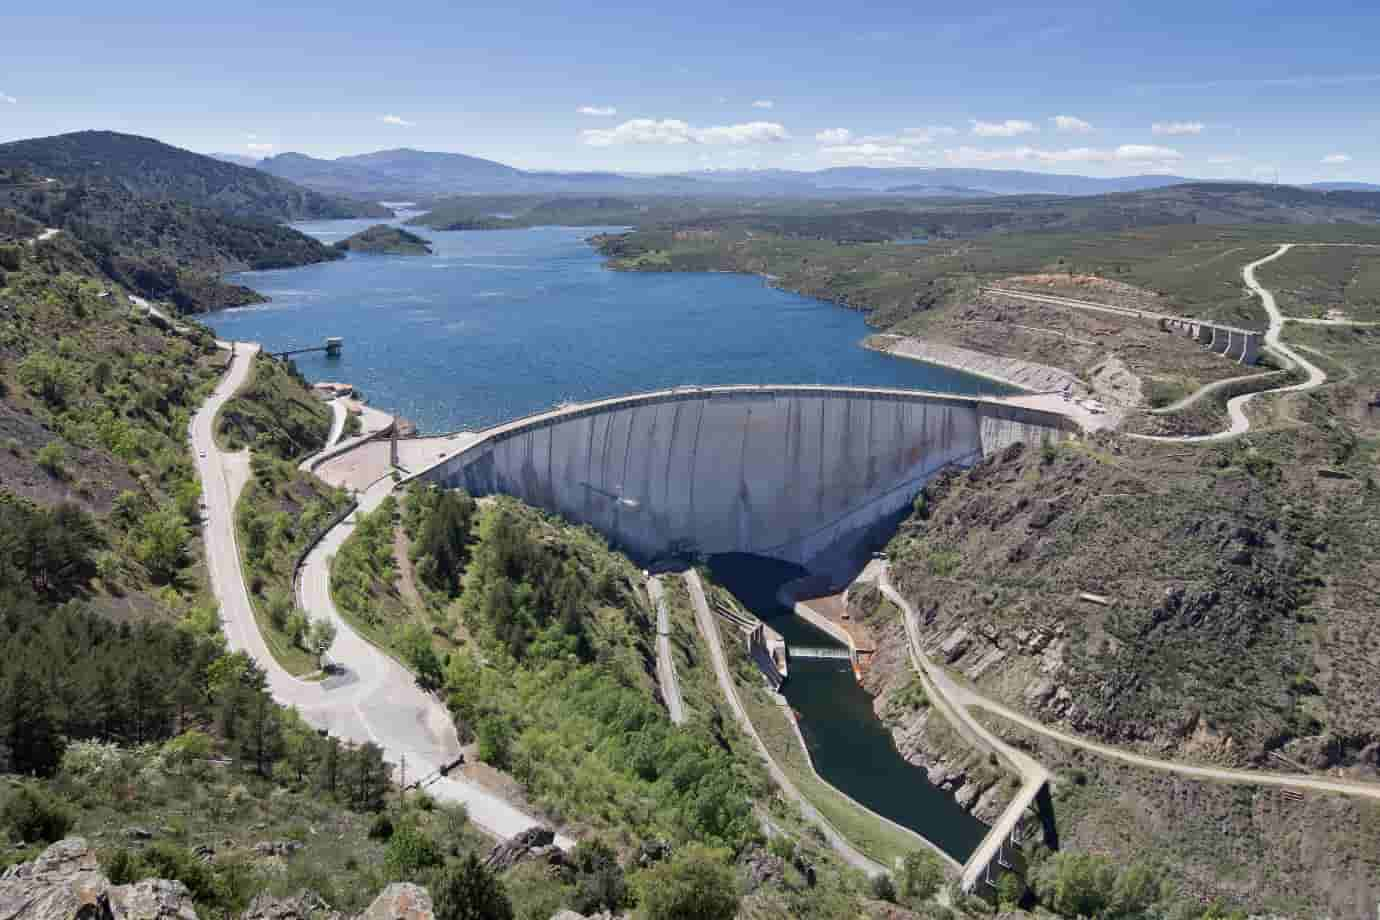 Idukki-Arched-Dam-second-largest-arched-dam-in-the-world